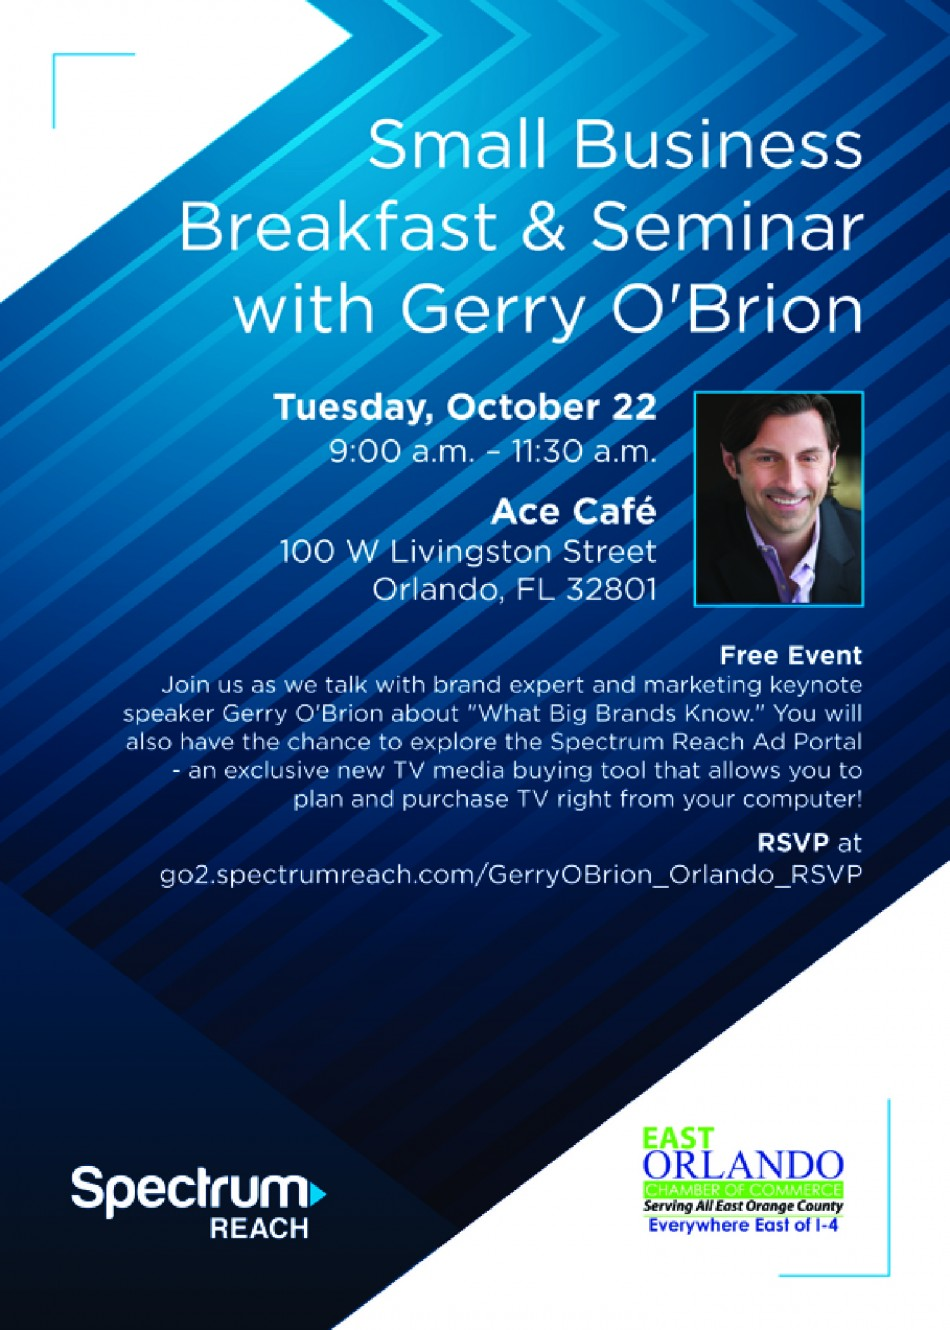 Small Business Breakfast & Seminar with Gerry O'Brion